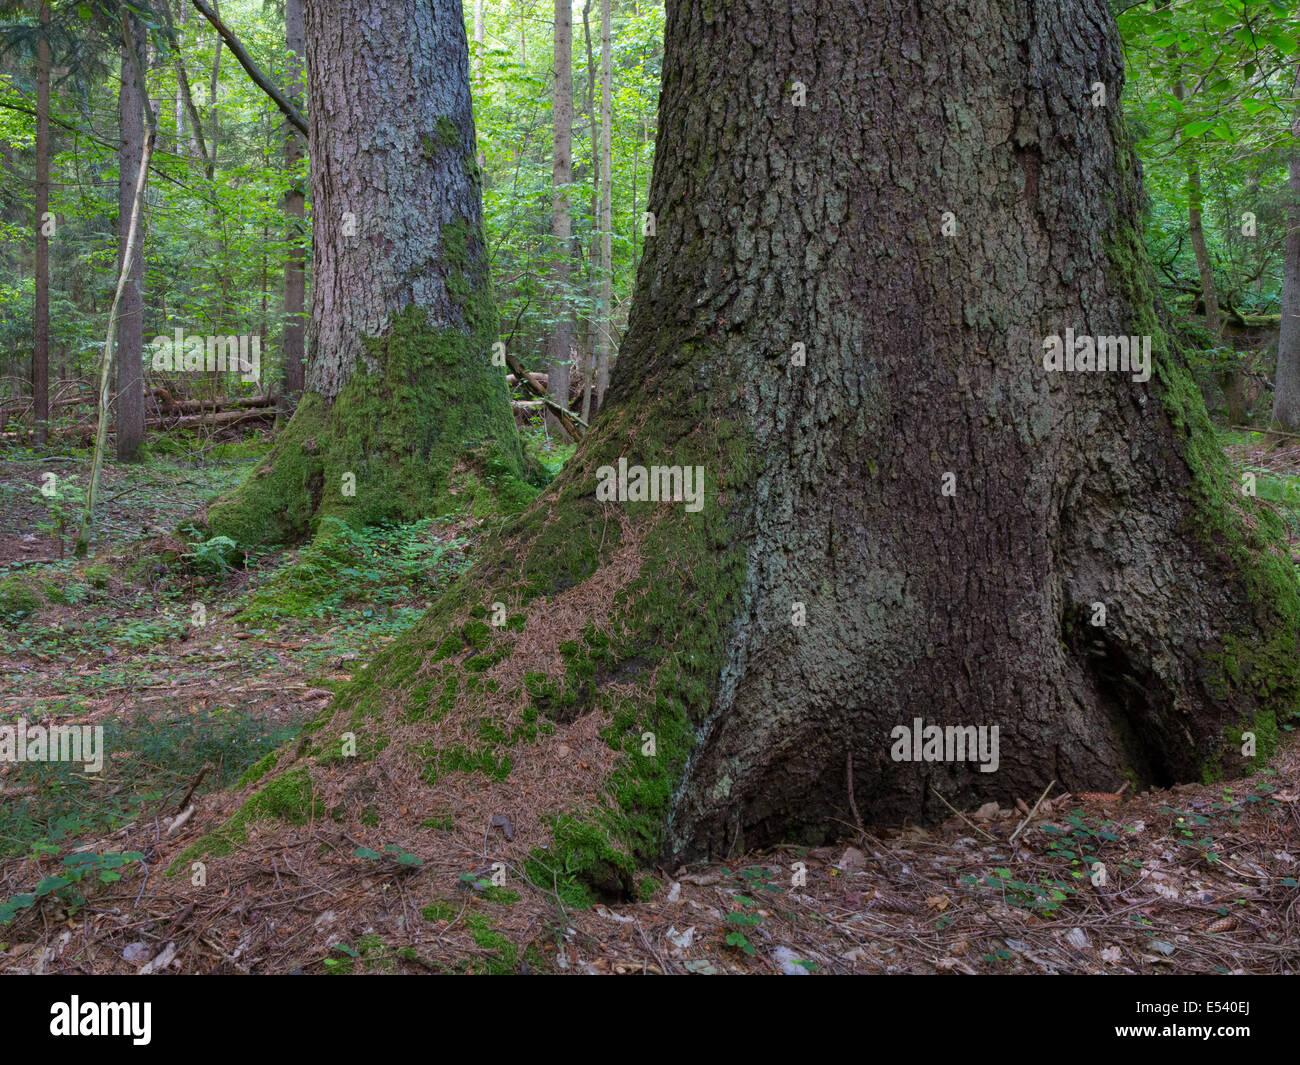 Monumental old spruces in summertime stand of Bialowieza Forest - Stock Image